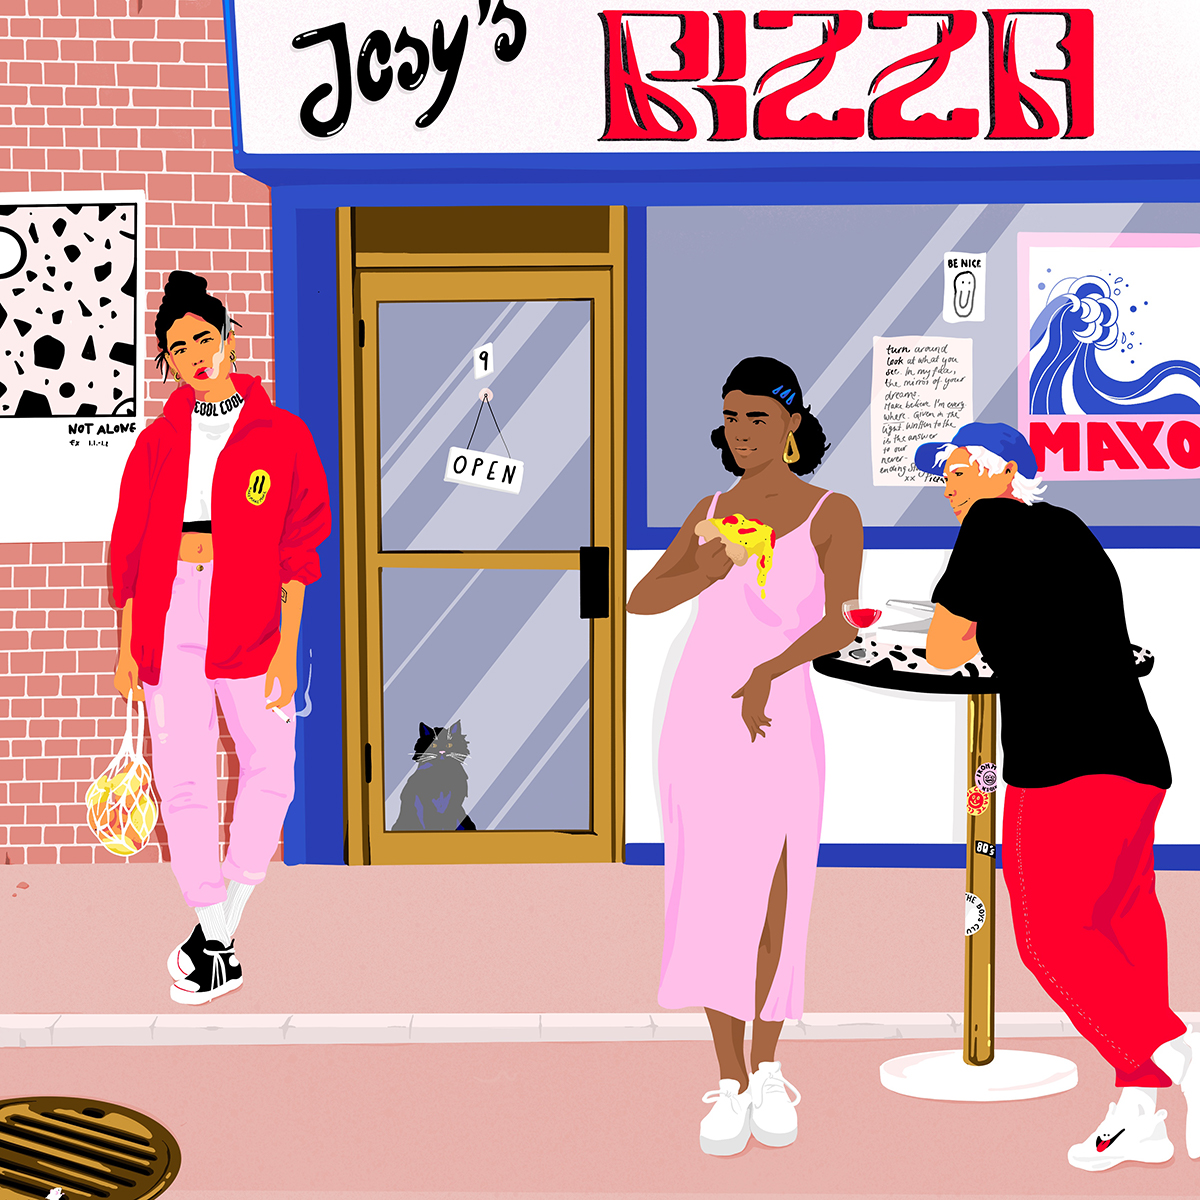 Josephine Rais' illustrations are a colourful take on everyday life